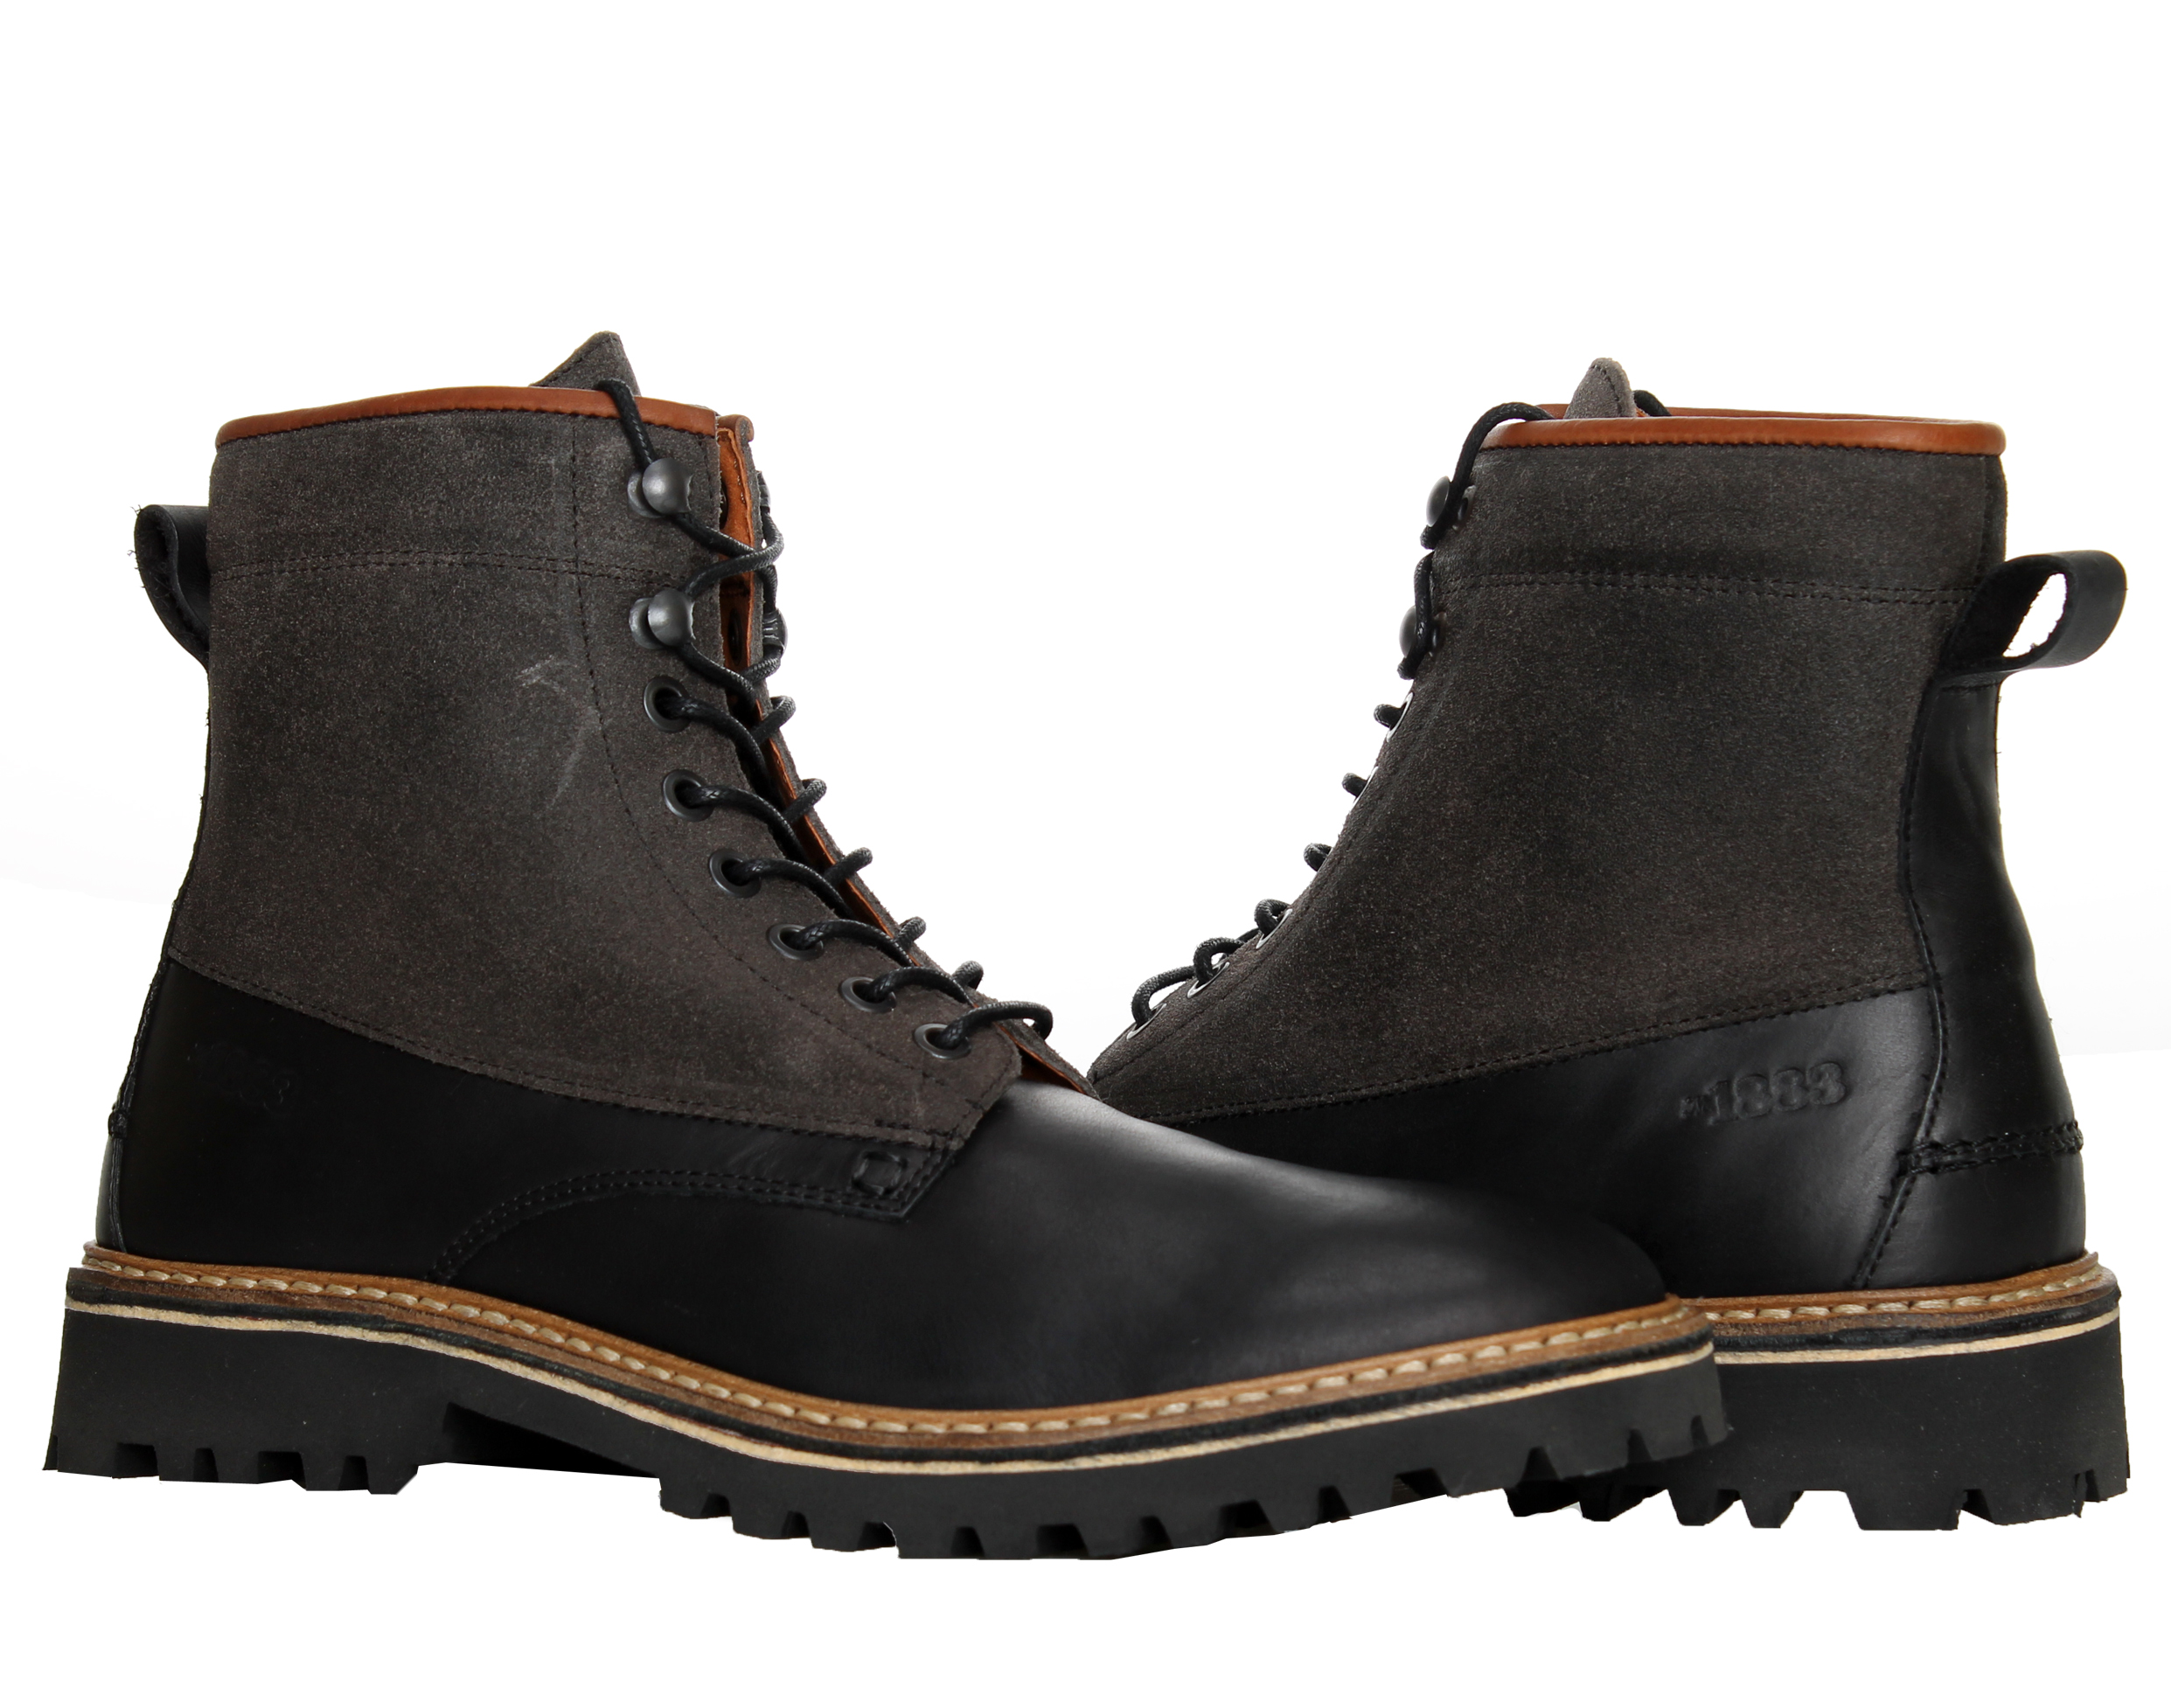 1883 by Wolverine Tomas Plain-Toe Hiker Black Men's Boots W00774 by